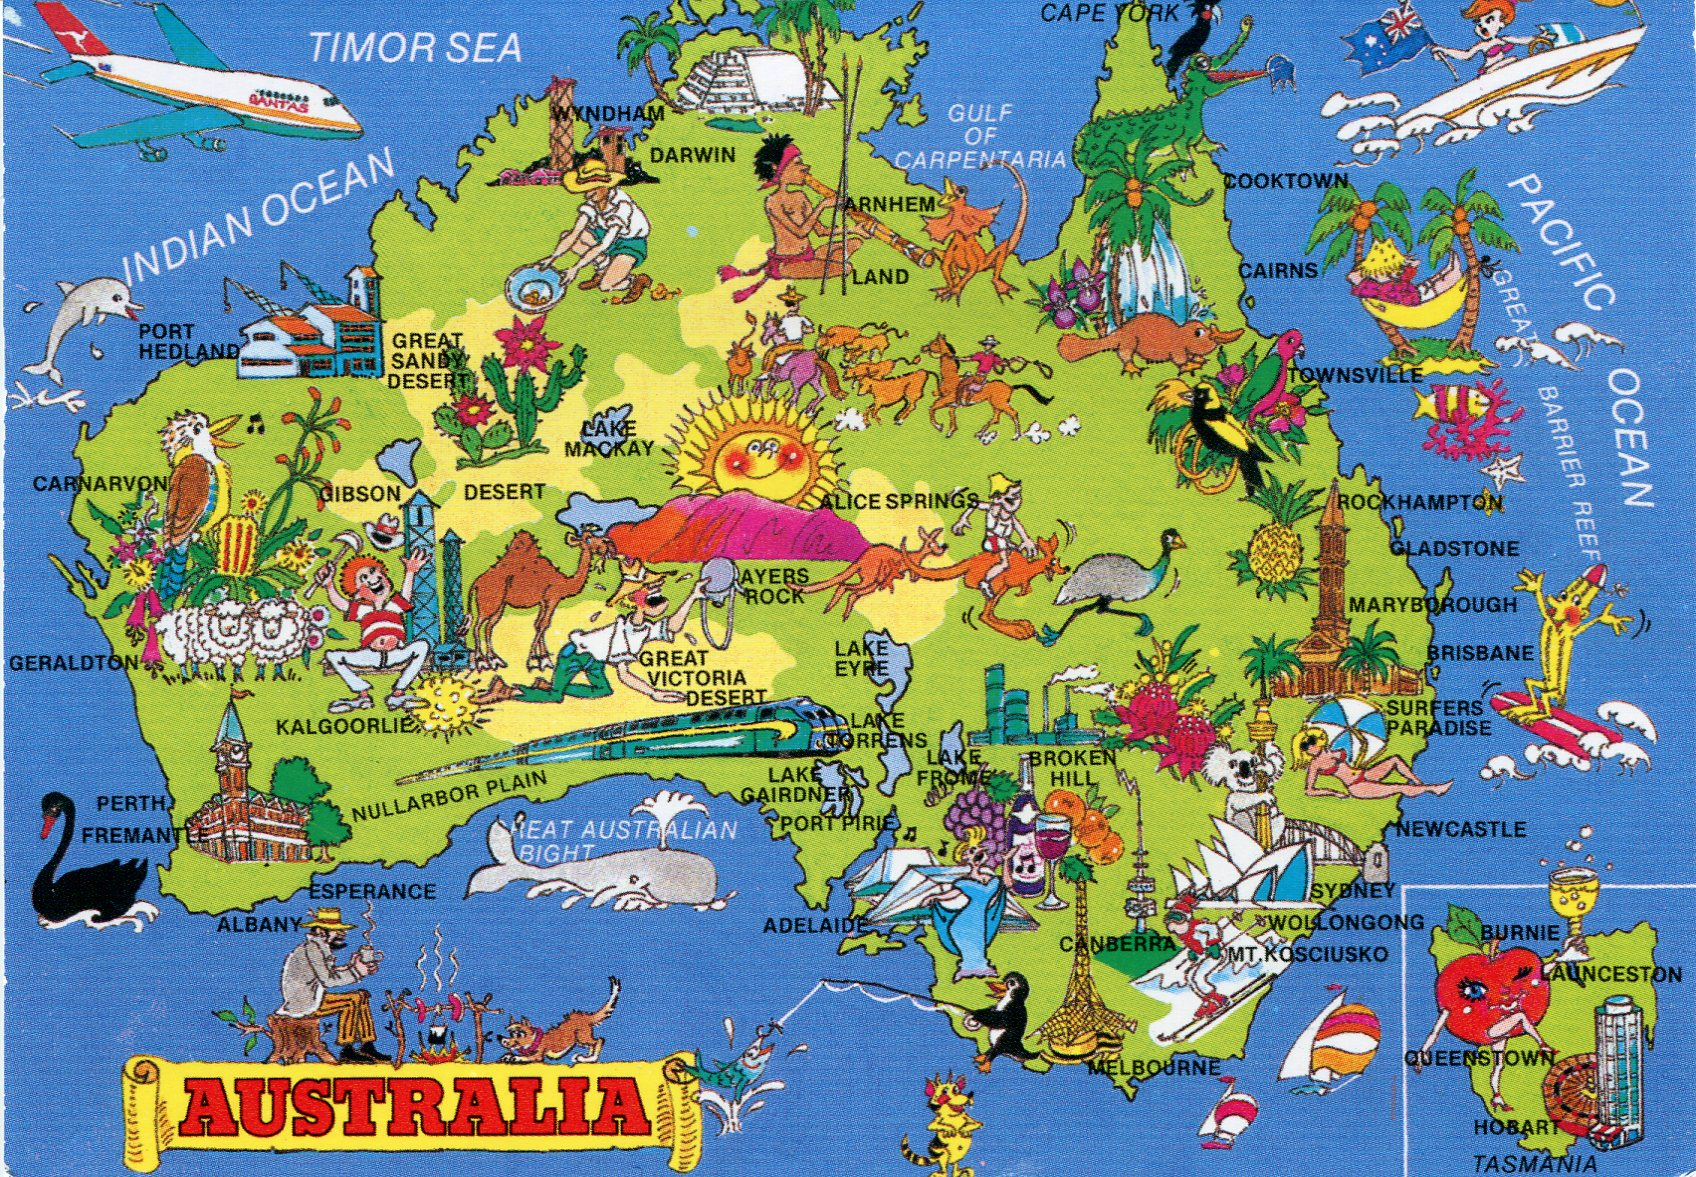 Mapping Australia Whats Your Favourite Place Lessons TES Teach – Australia Tourist Attractions Map